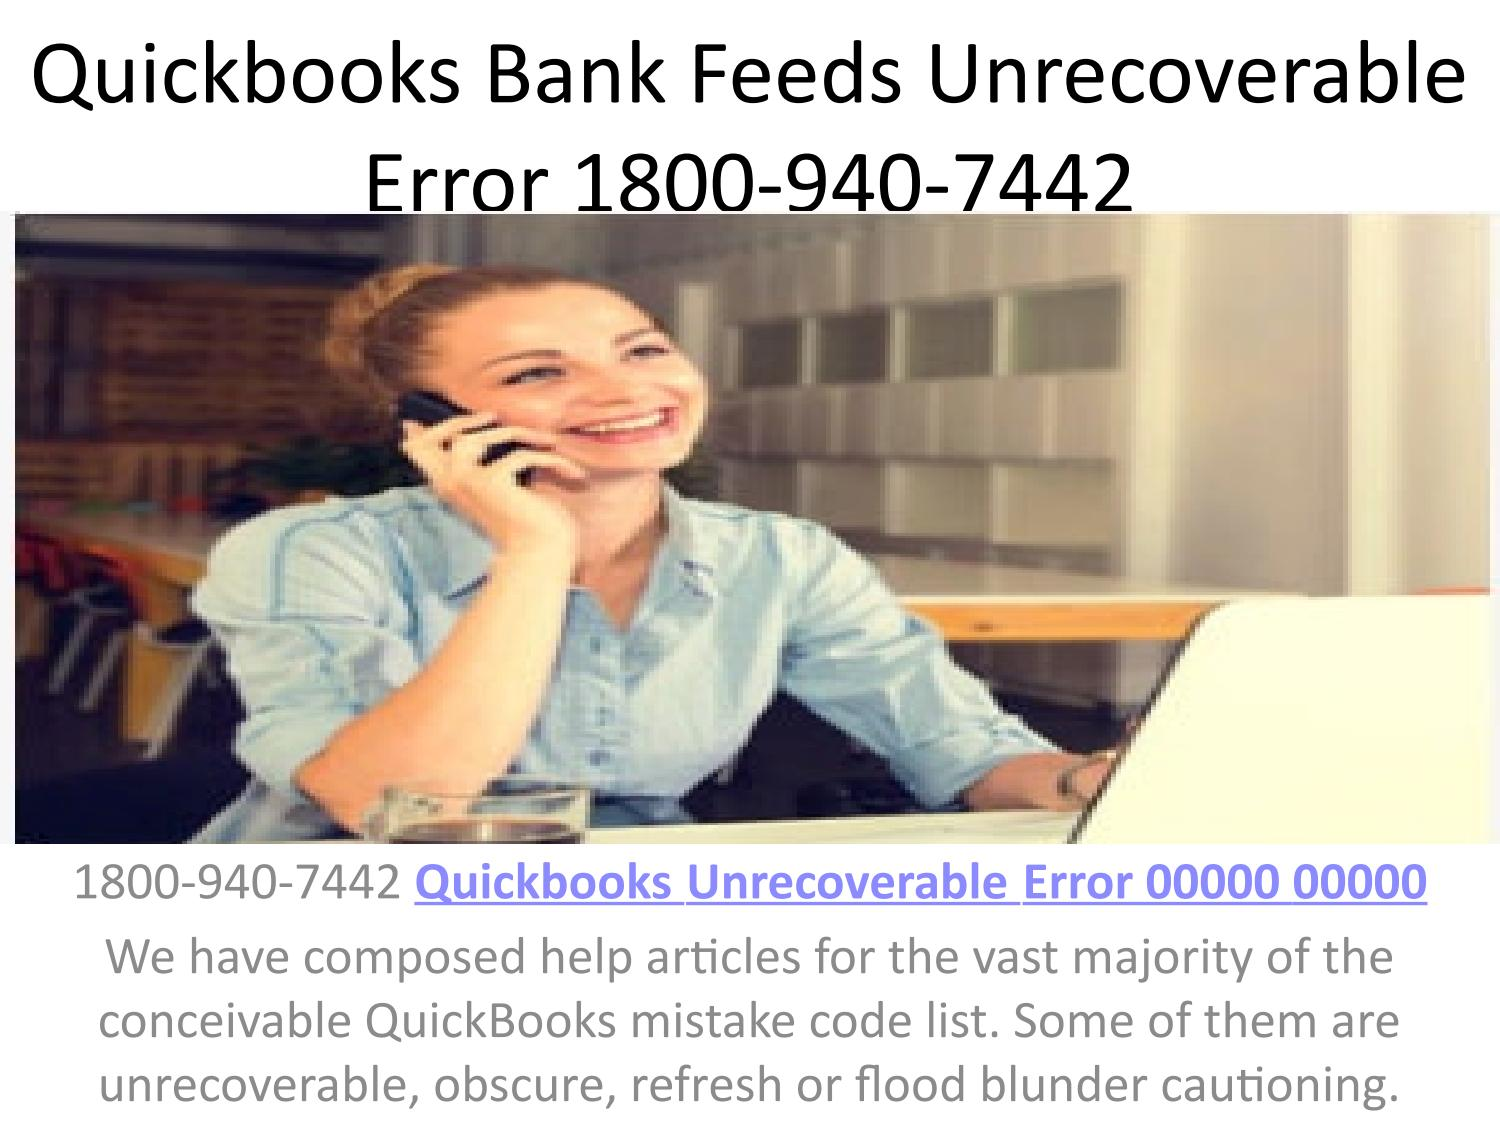 Quickbooks bank feeds unrecoverable error 1800-940-7442 by